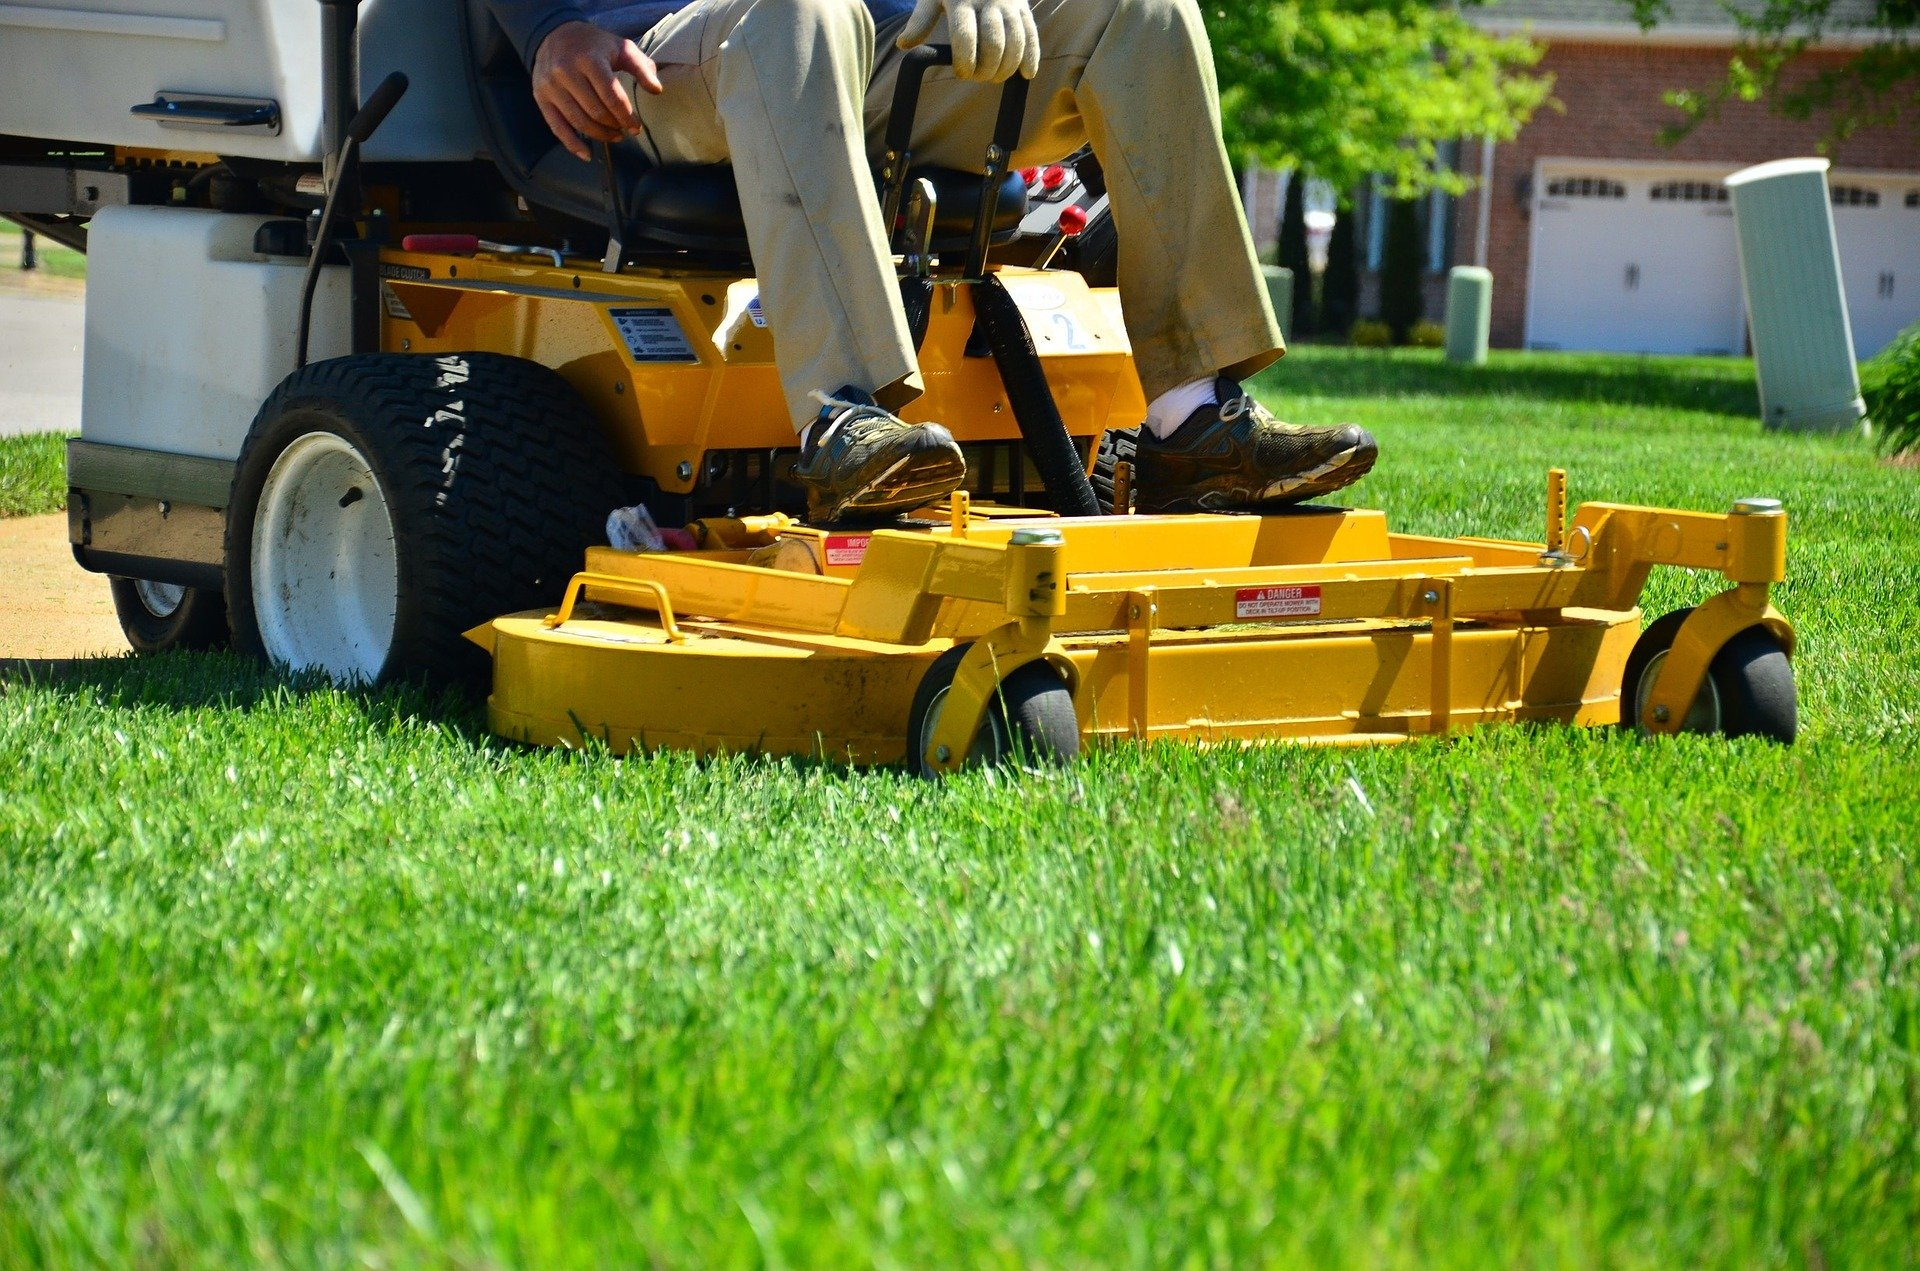 Home Lawn Maintenance - mowing